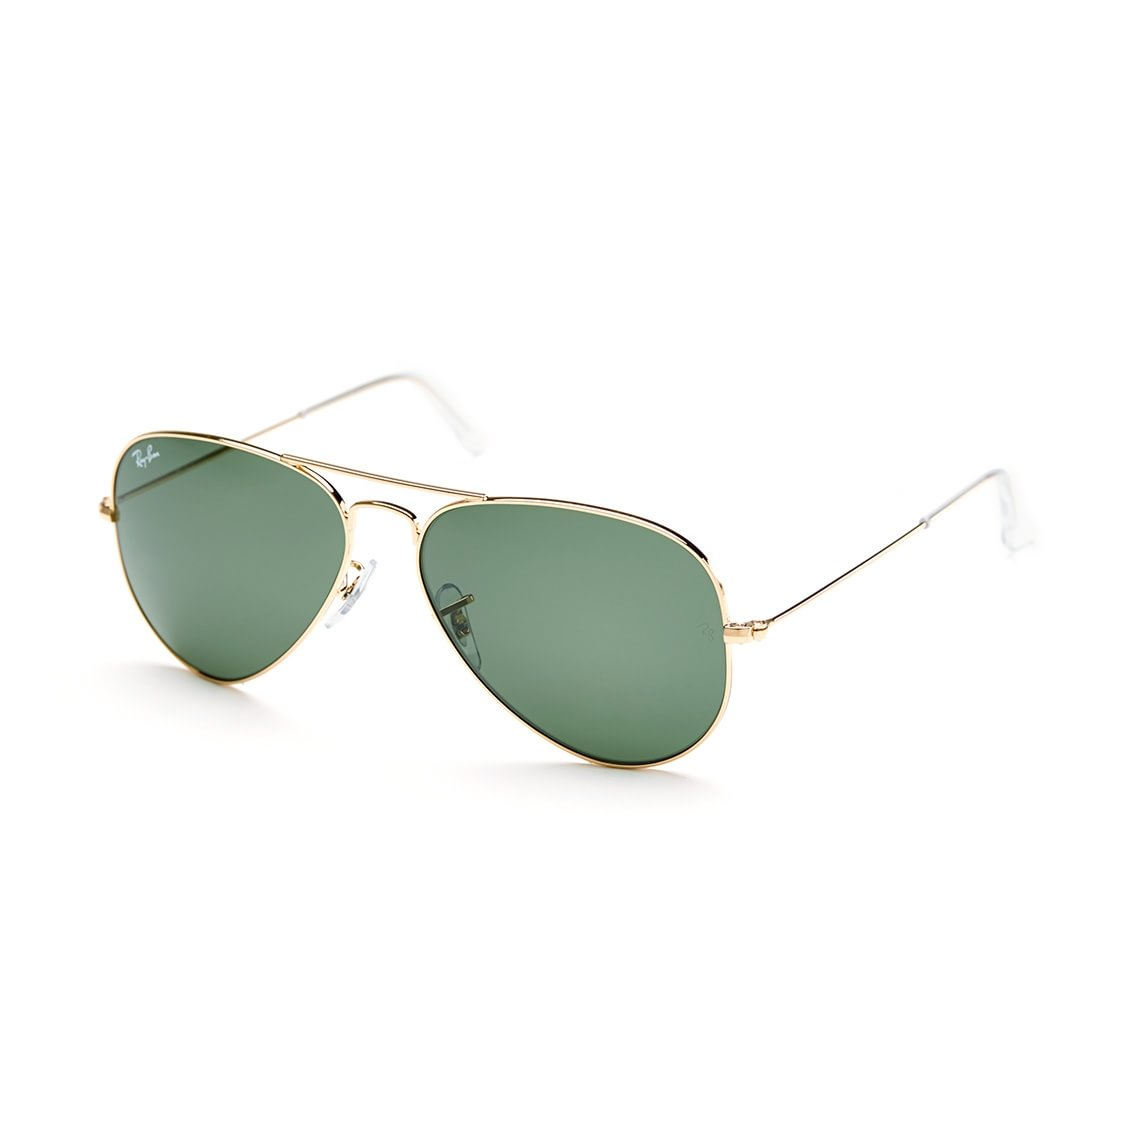 Ray-Ban Aviator RB3025 L0205 58